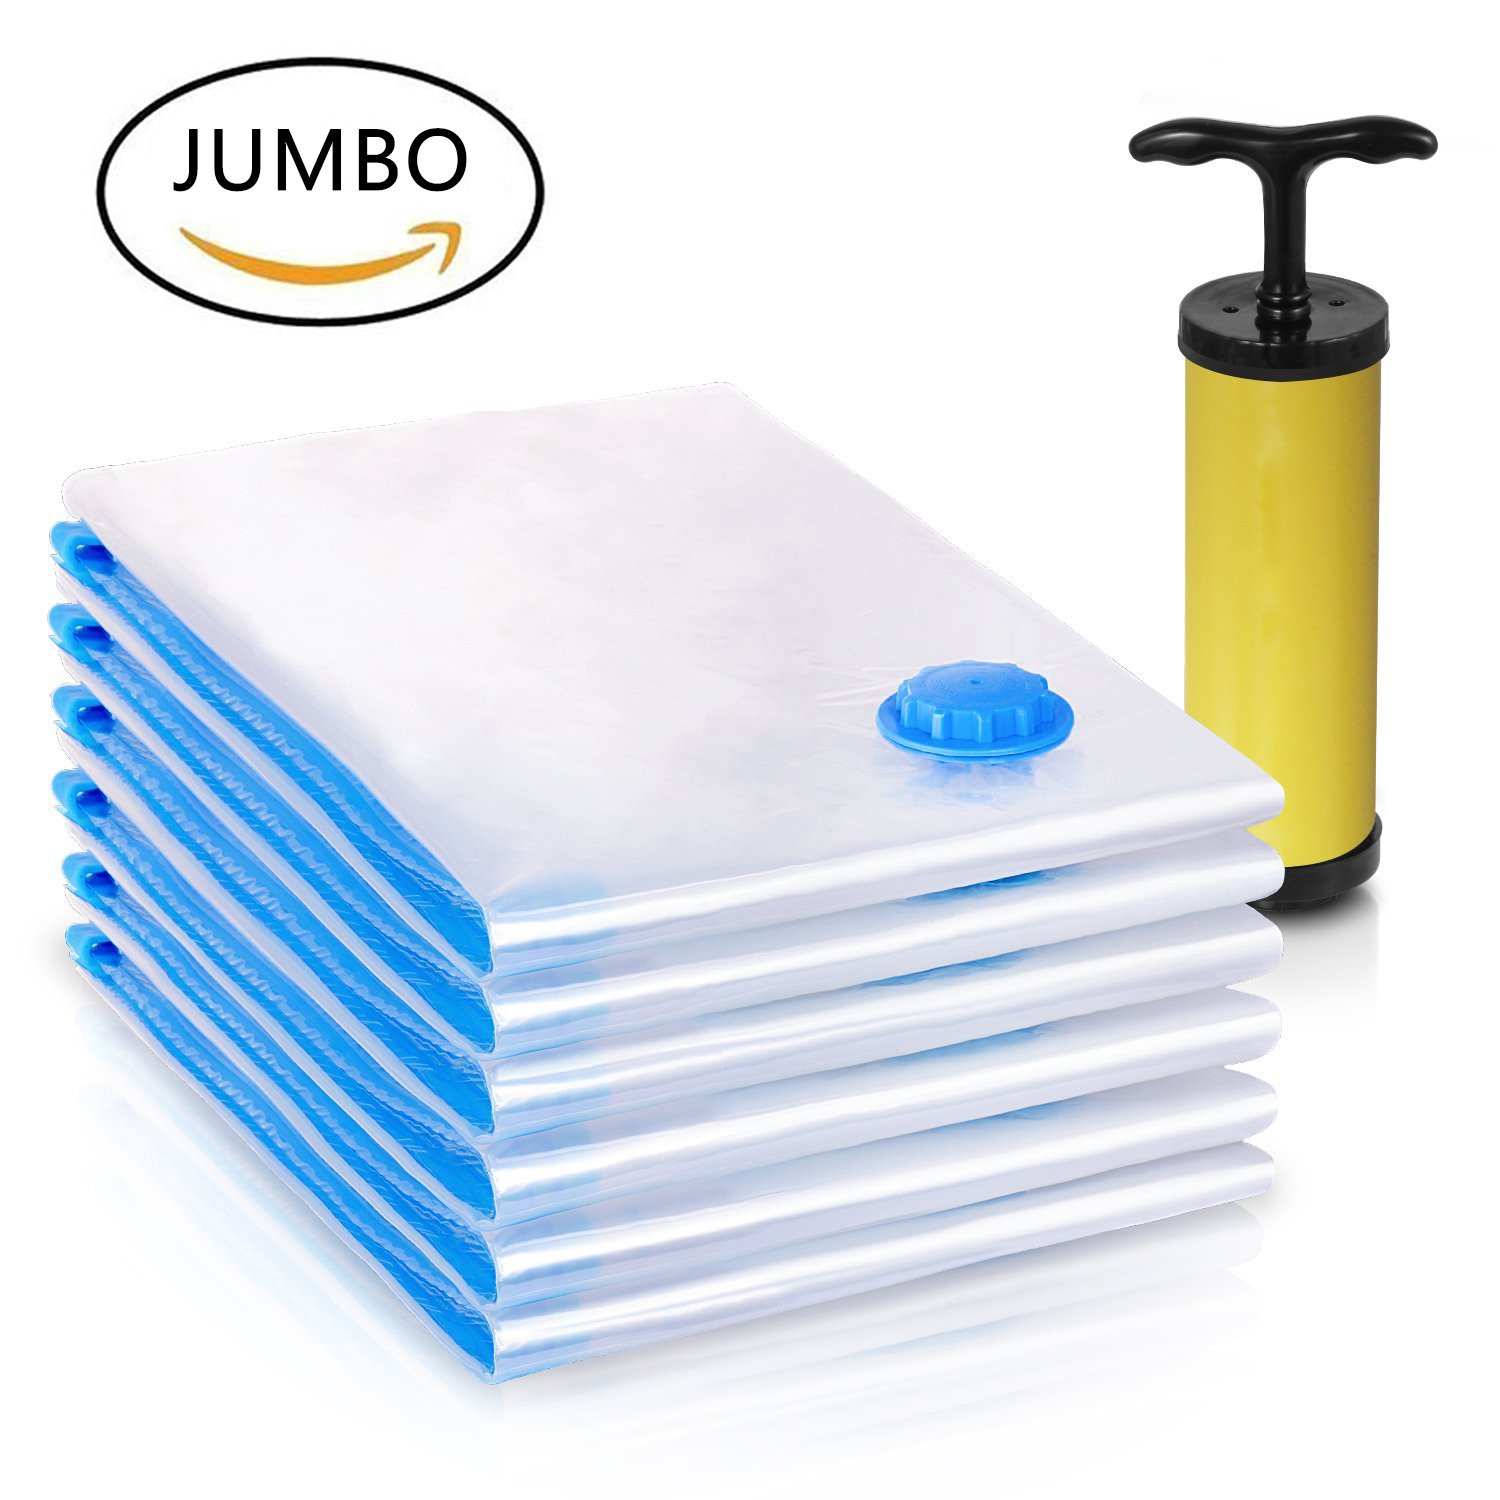 "JUMBO Space Saver Large Vacuum Bags Vacuum Space Saver Vacuum Storage Bags Space Saver Vacuum Bags Airtight Storage Bags Compression Bags Vacuum Bags Large Space Saver REUSABLE (40x30"")6 PACK"